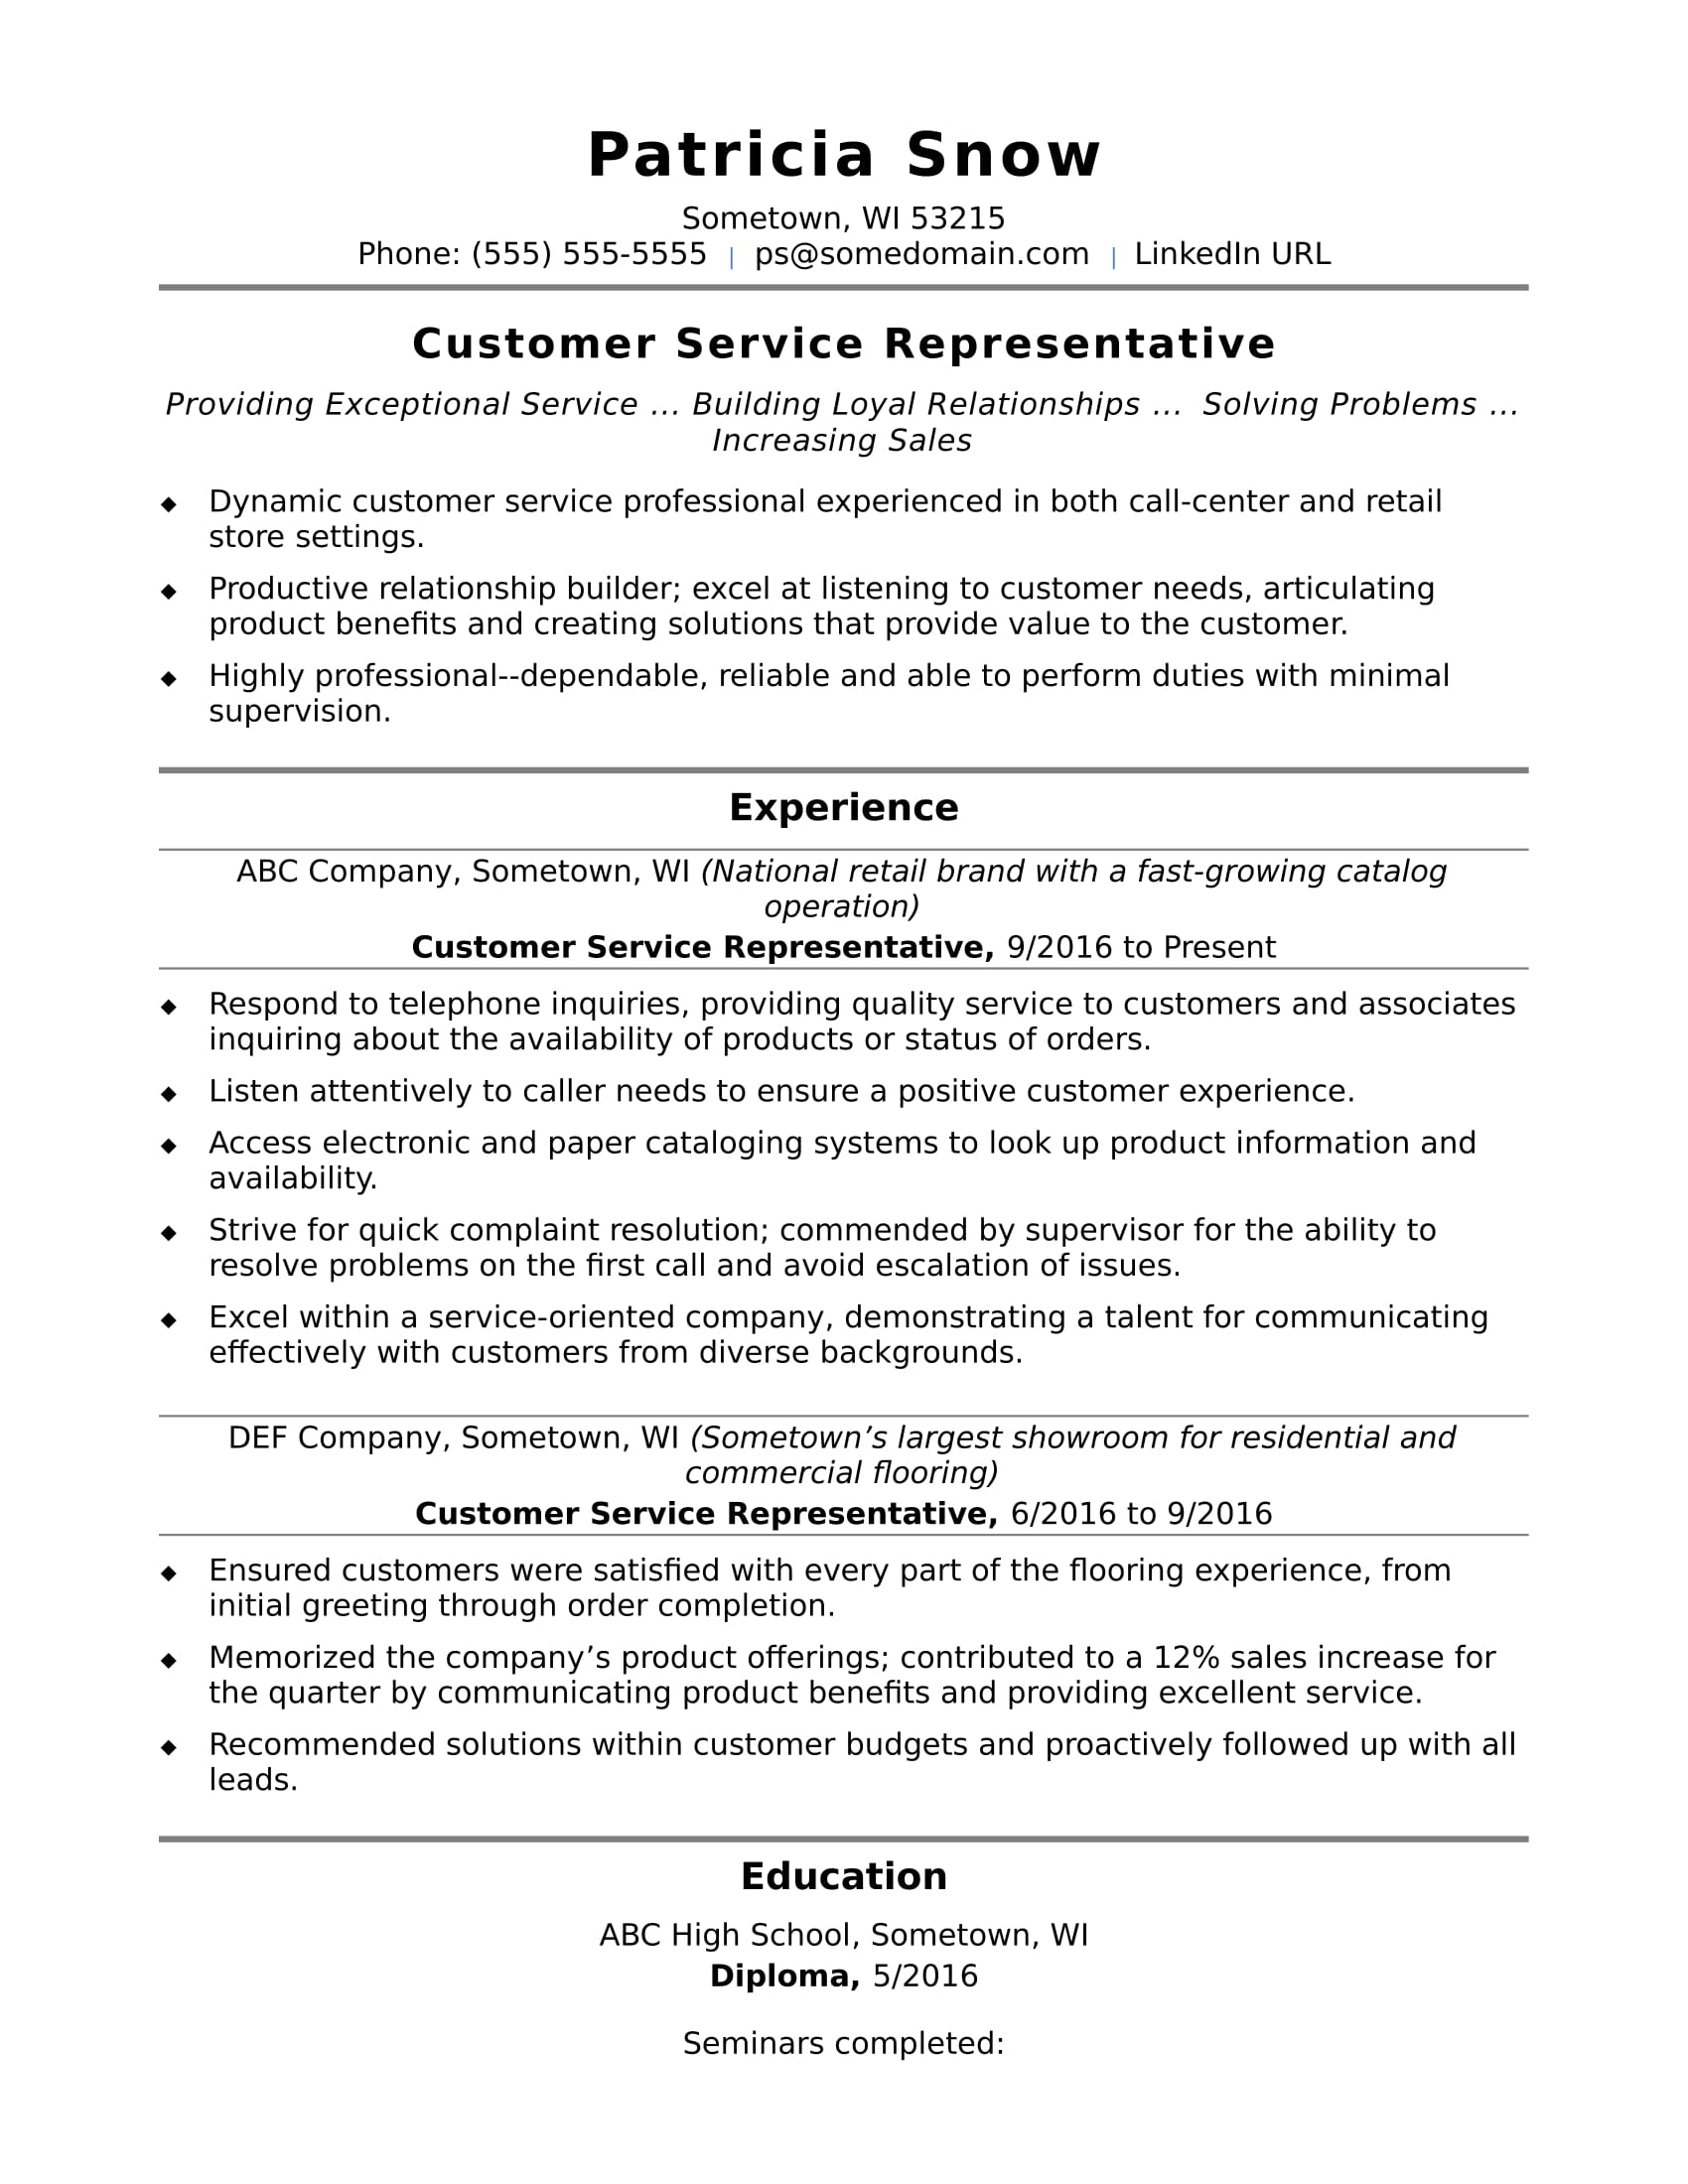 view sample resume for customer service specialist